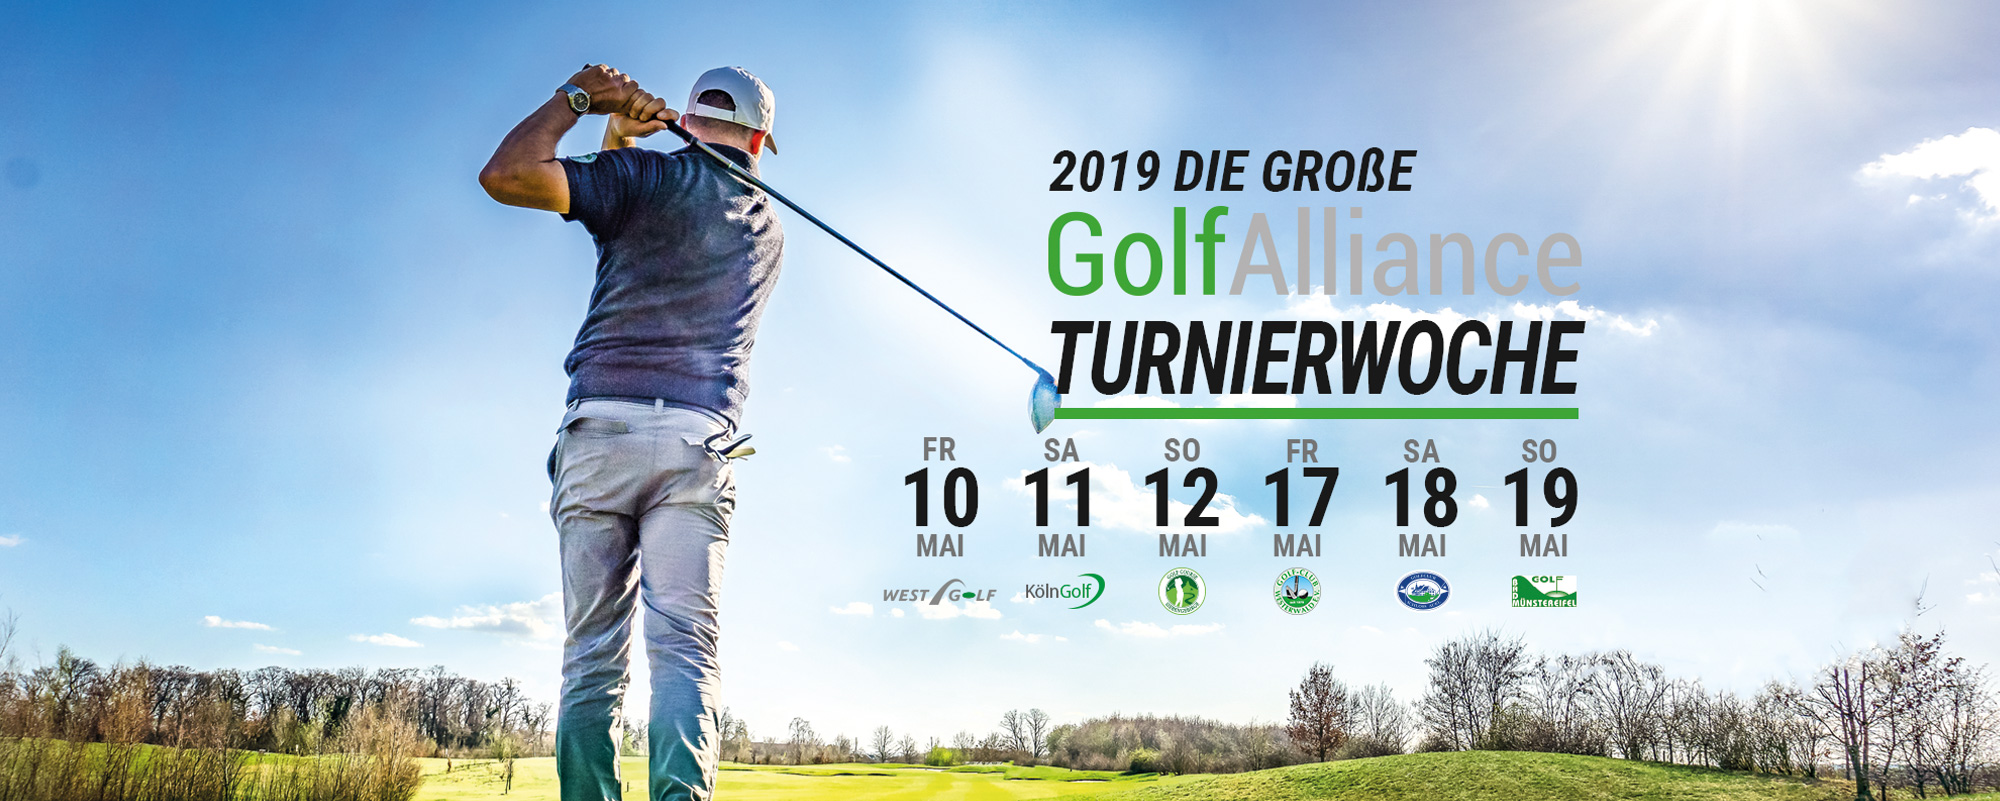 GolfAlliance Turnierwoche 2019